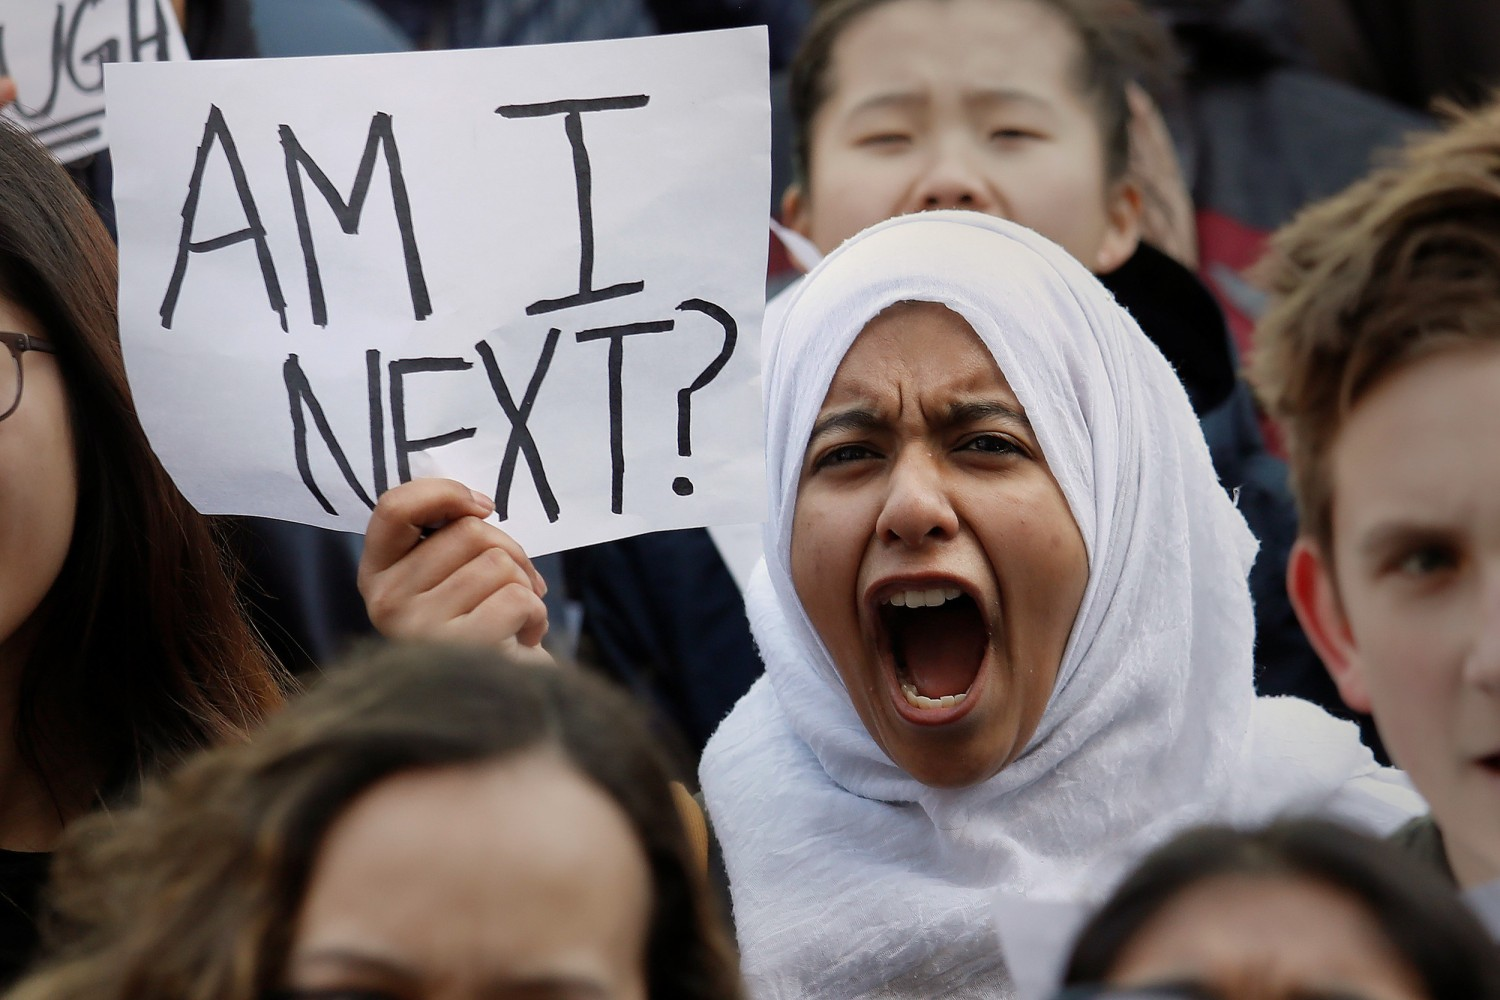 Image Students Participate In A March In Support Of The National School Walkout In The